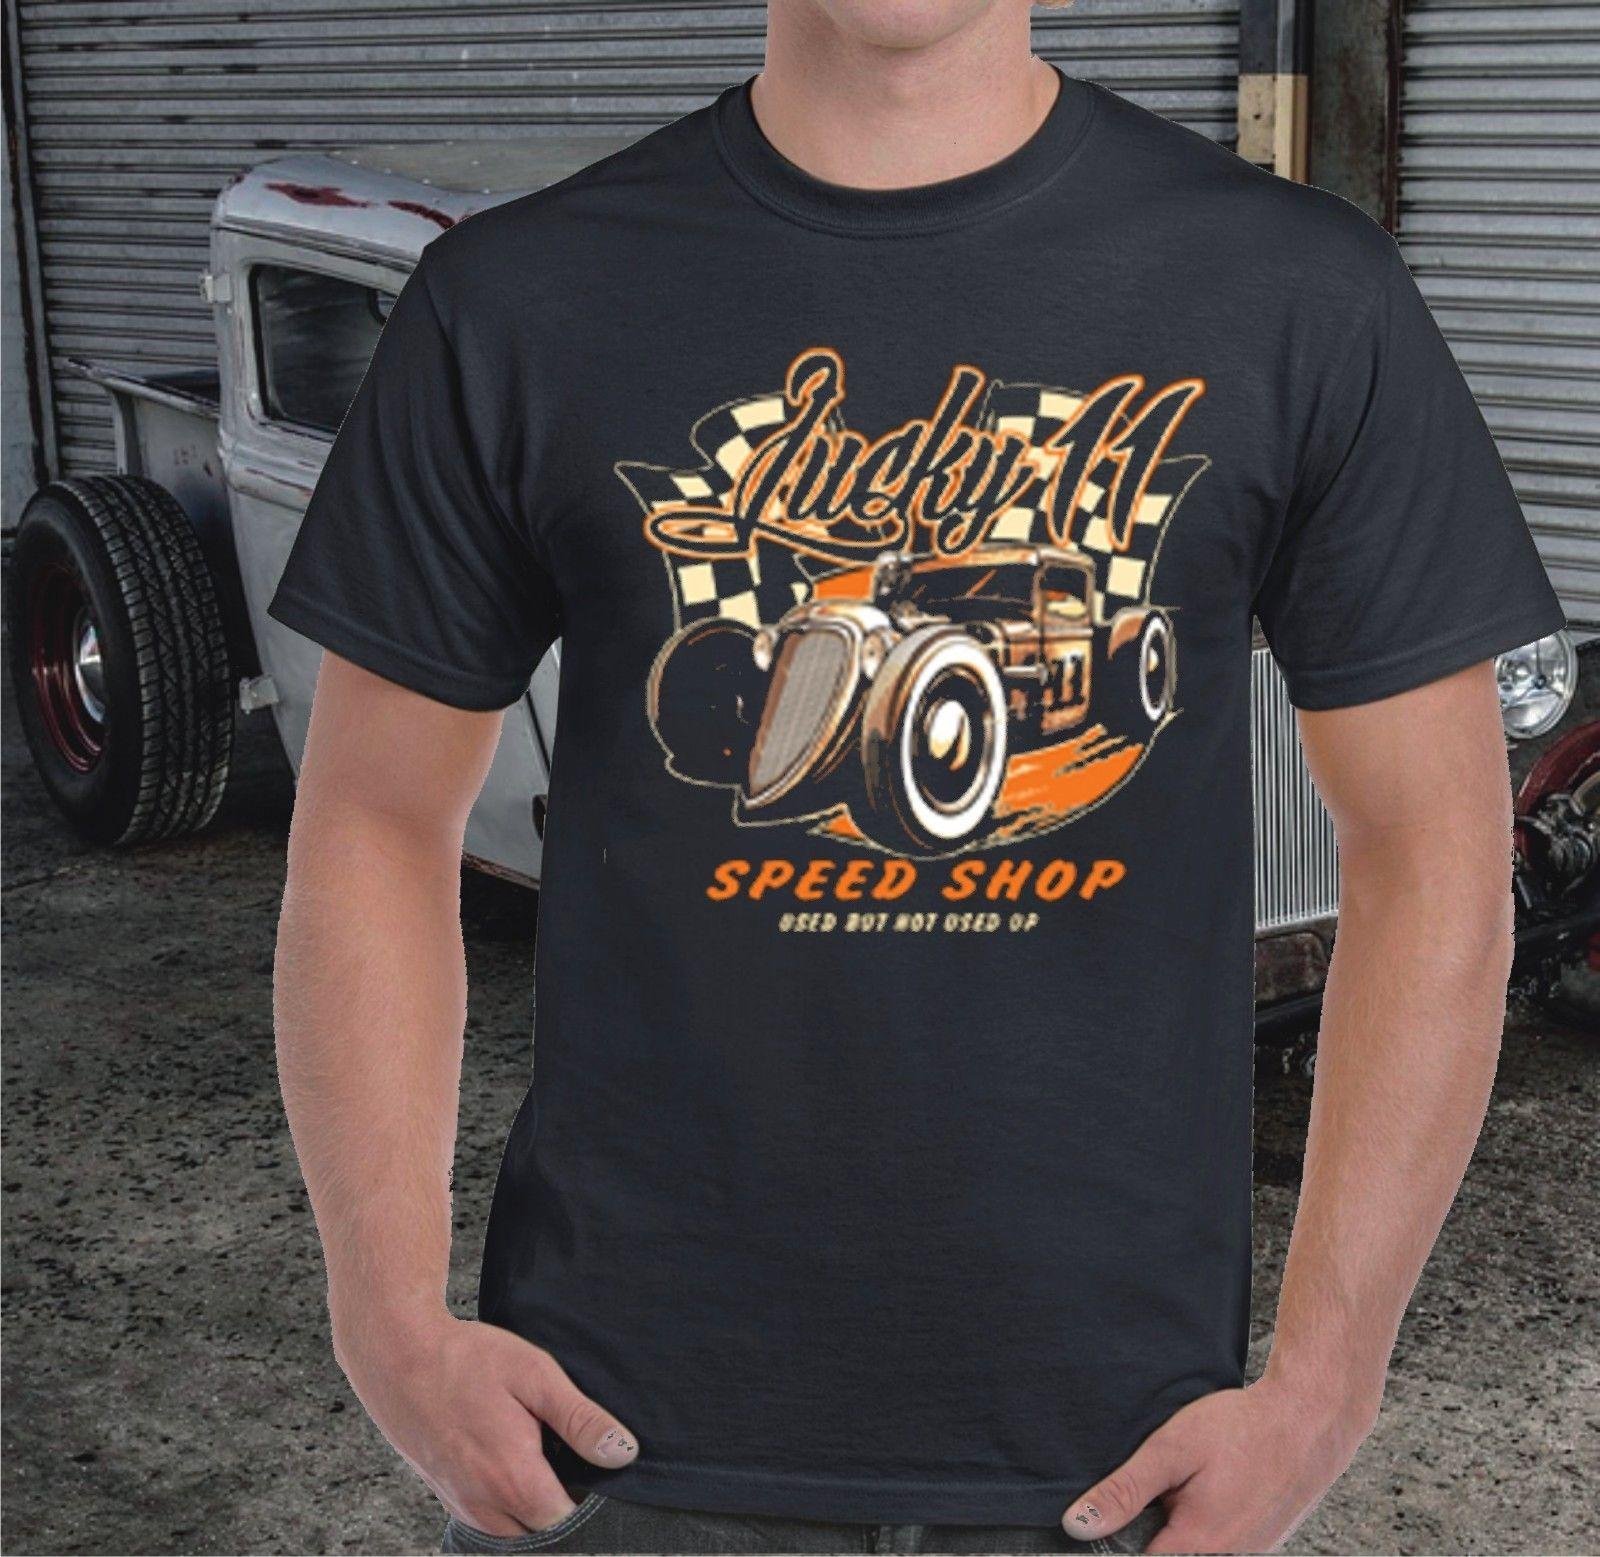 Hot Rod T Shirts >> Lucky 11 Speed Shop Hot Rod Rat Rod T Shirt 2018 New Men Tee 2018 Fashion T Shirts Summer Short Sleeves